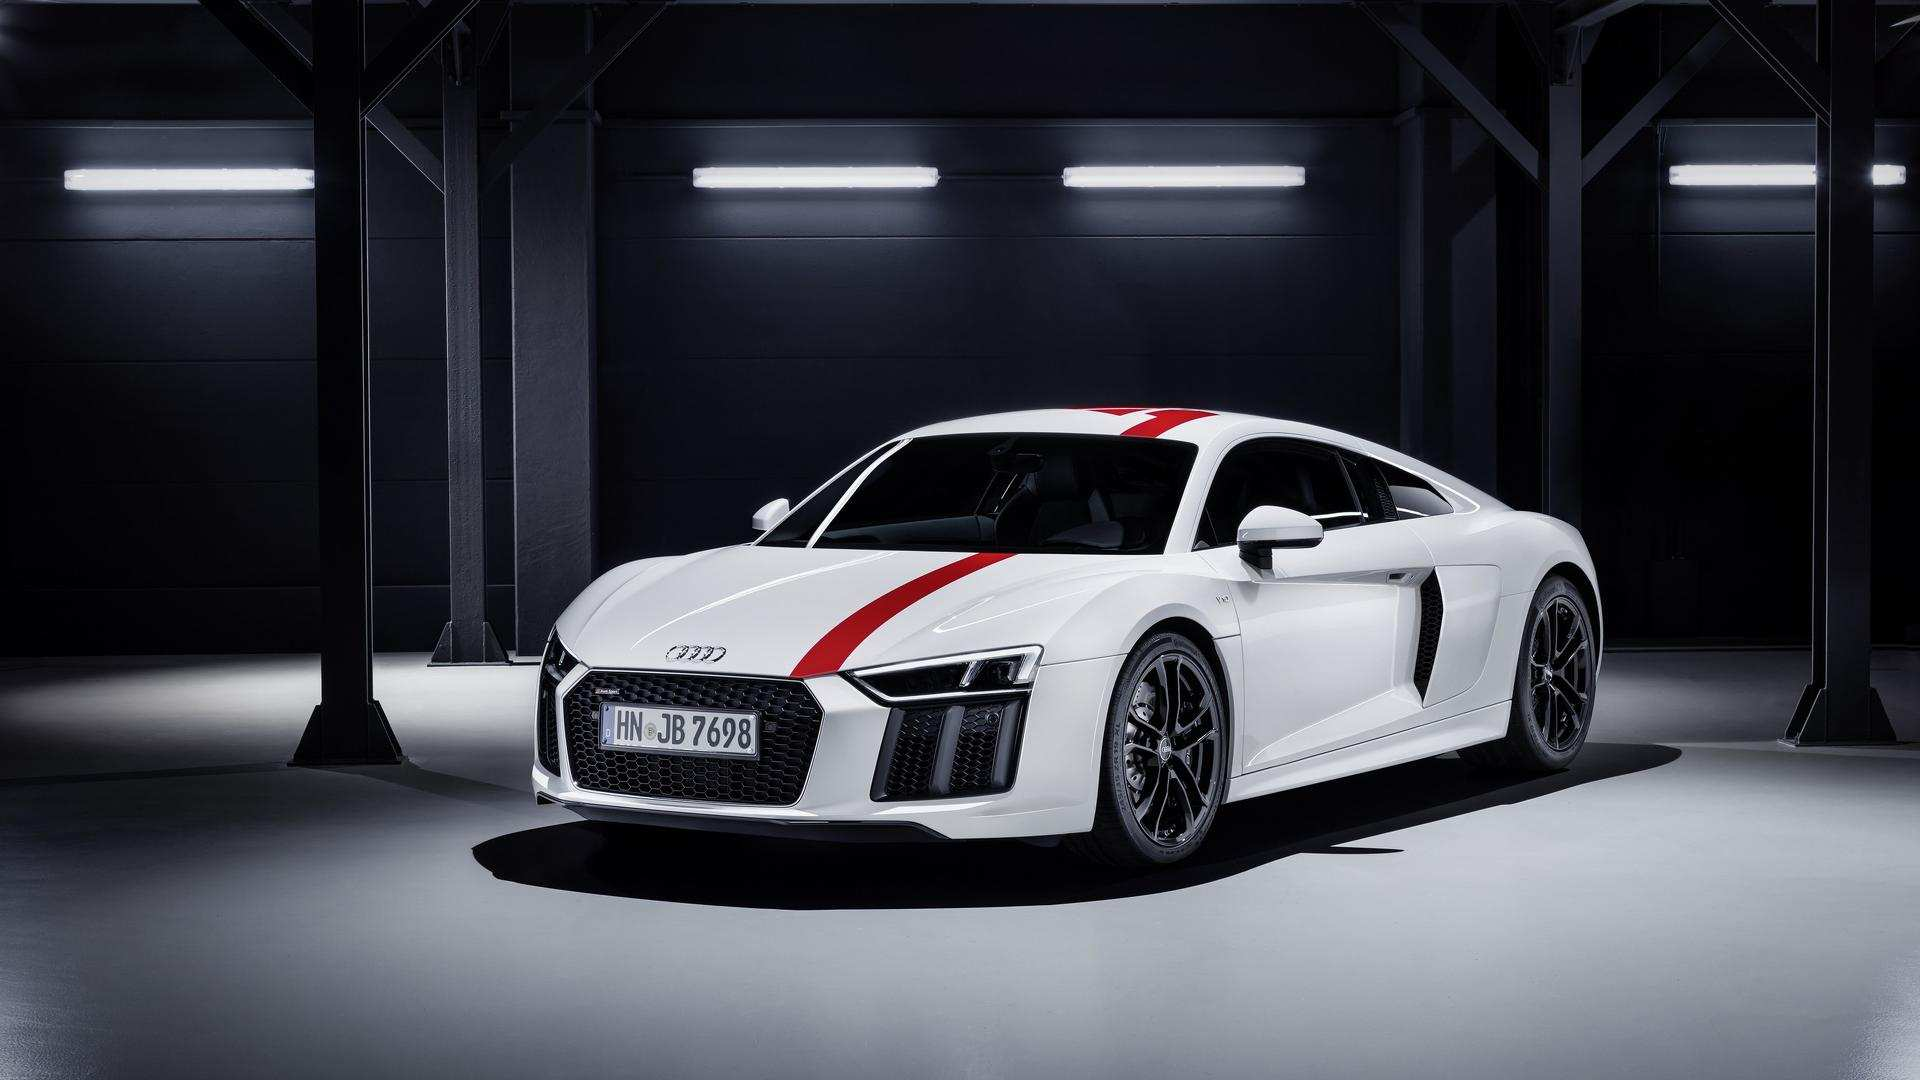 16 Gallery of Audi R8 V10 2020 Spesification with Audi R8 V10 2020